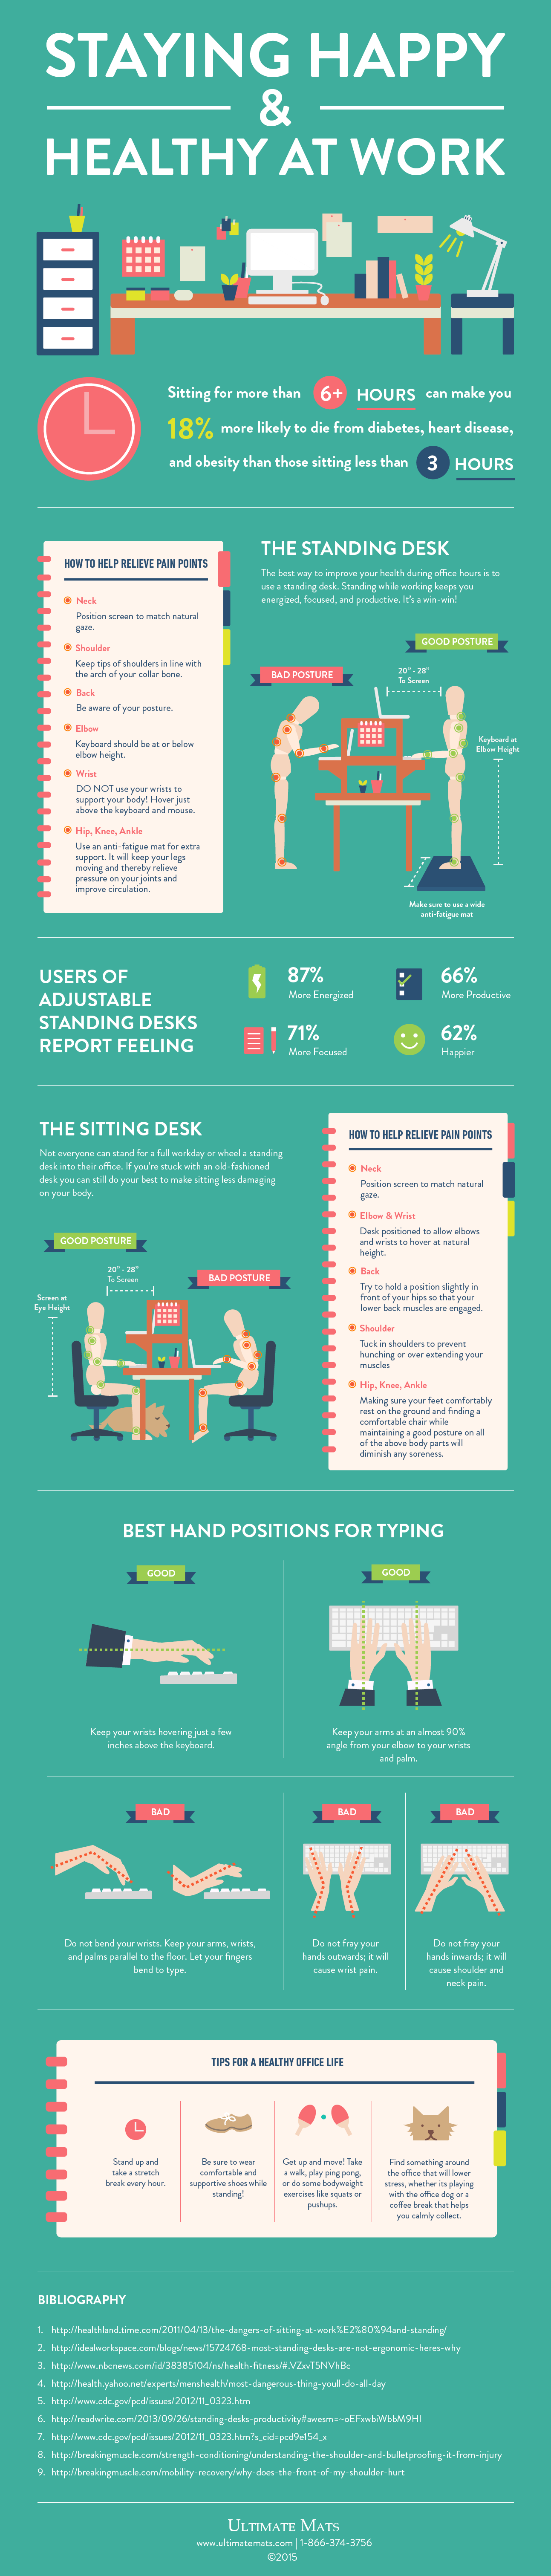 Staying Healthy At Office Work: Pain-Free Postures And Tips Infographic